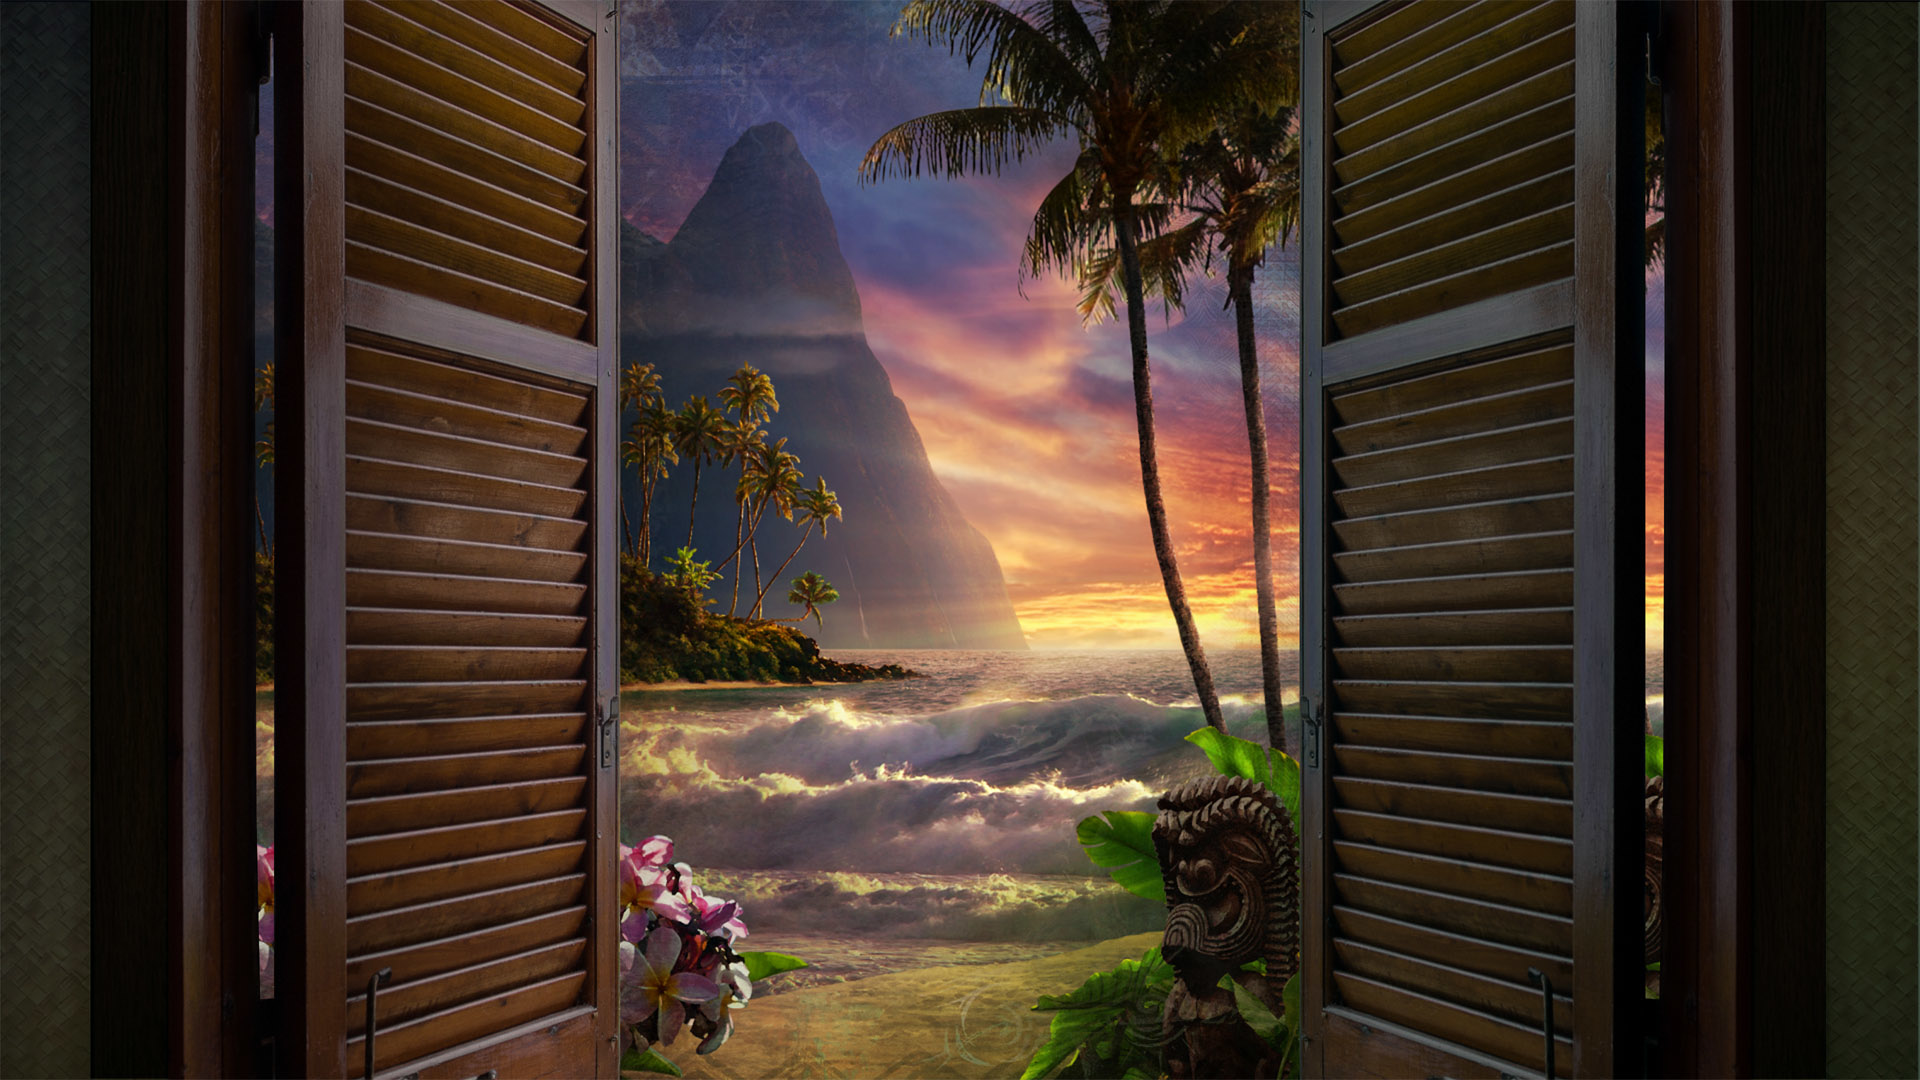 WINDOW TO PARADISE (Art Stick) - SEE SAMPLE VIDEO, CLICK ON BOTTOM RIGHT BOX ICON TO WATCH FULL SCREEN by Steve Matson